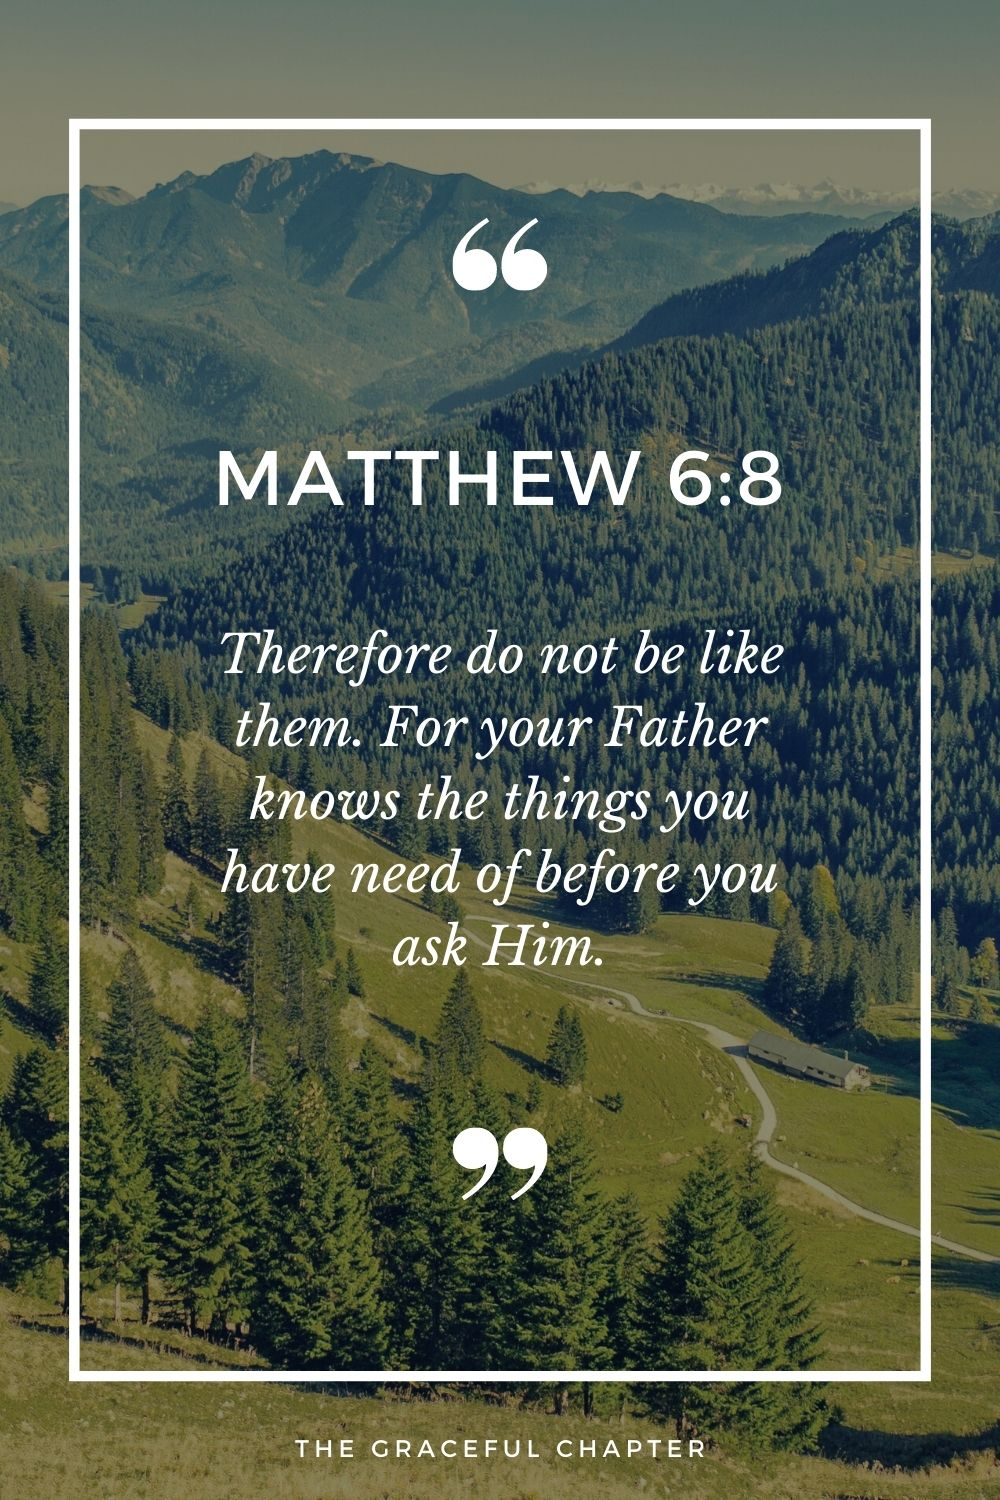 Therefore do not be like them. For your Father knows the things you have need of before you ask Him. Matthew 6:8